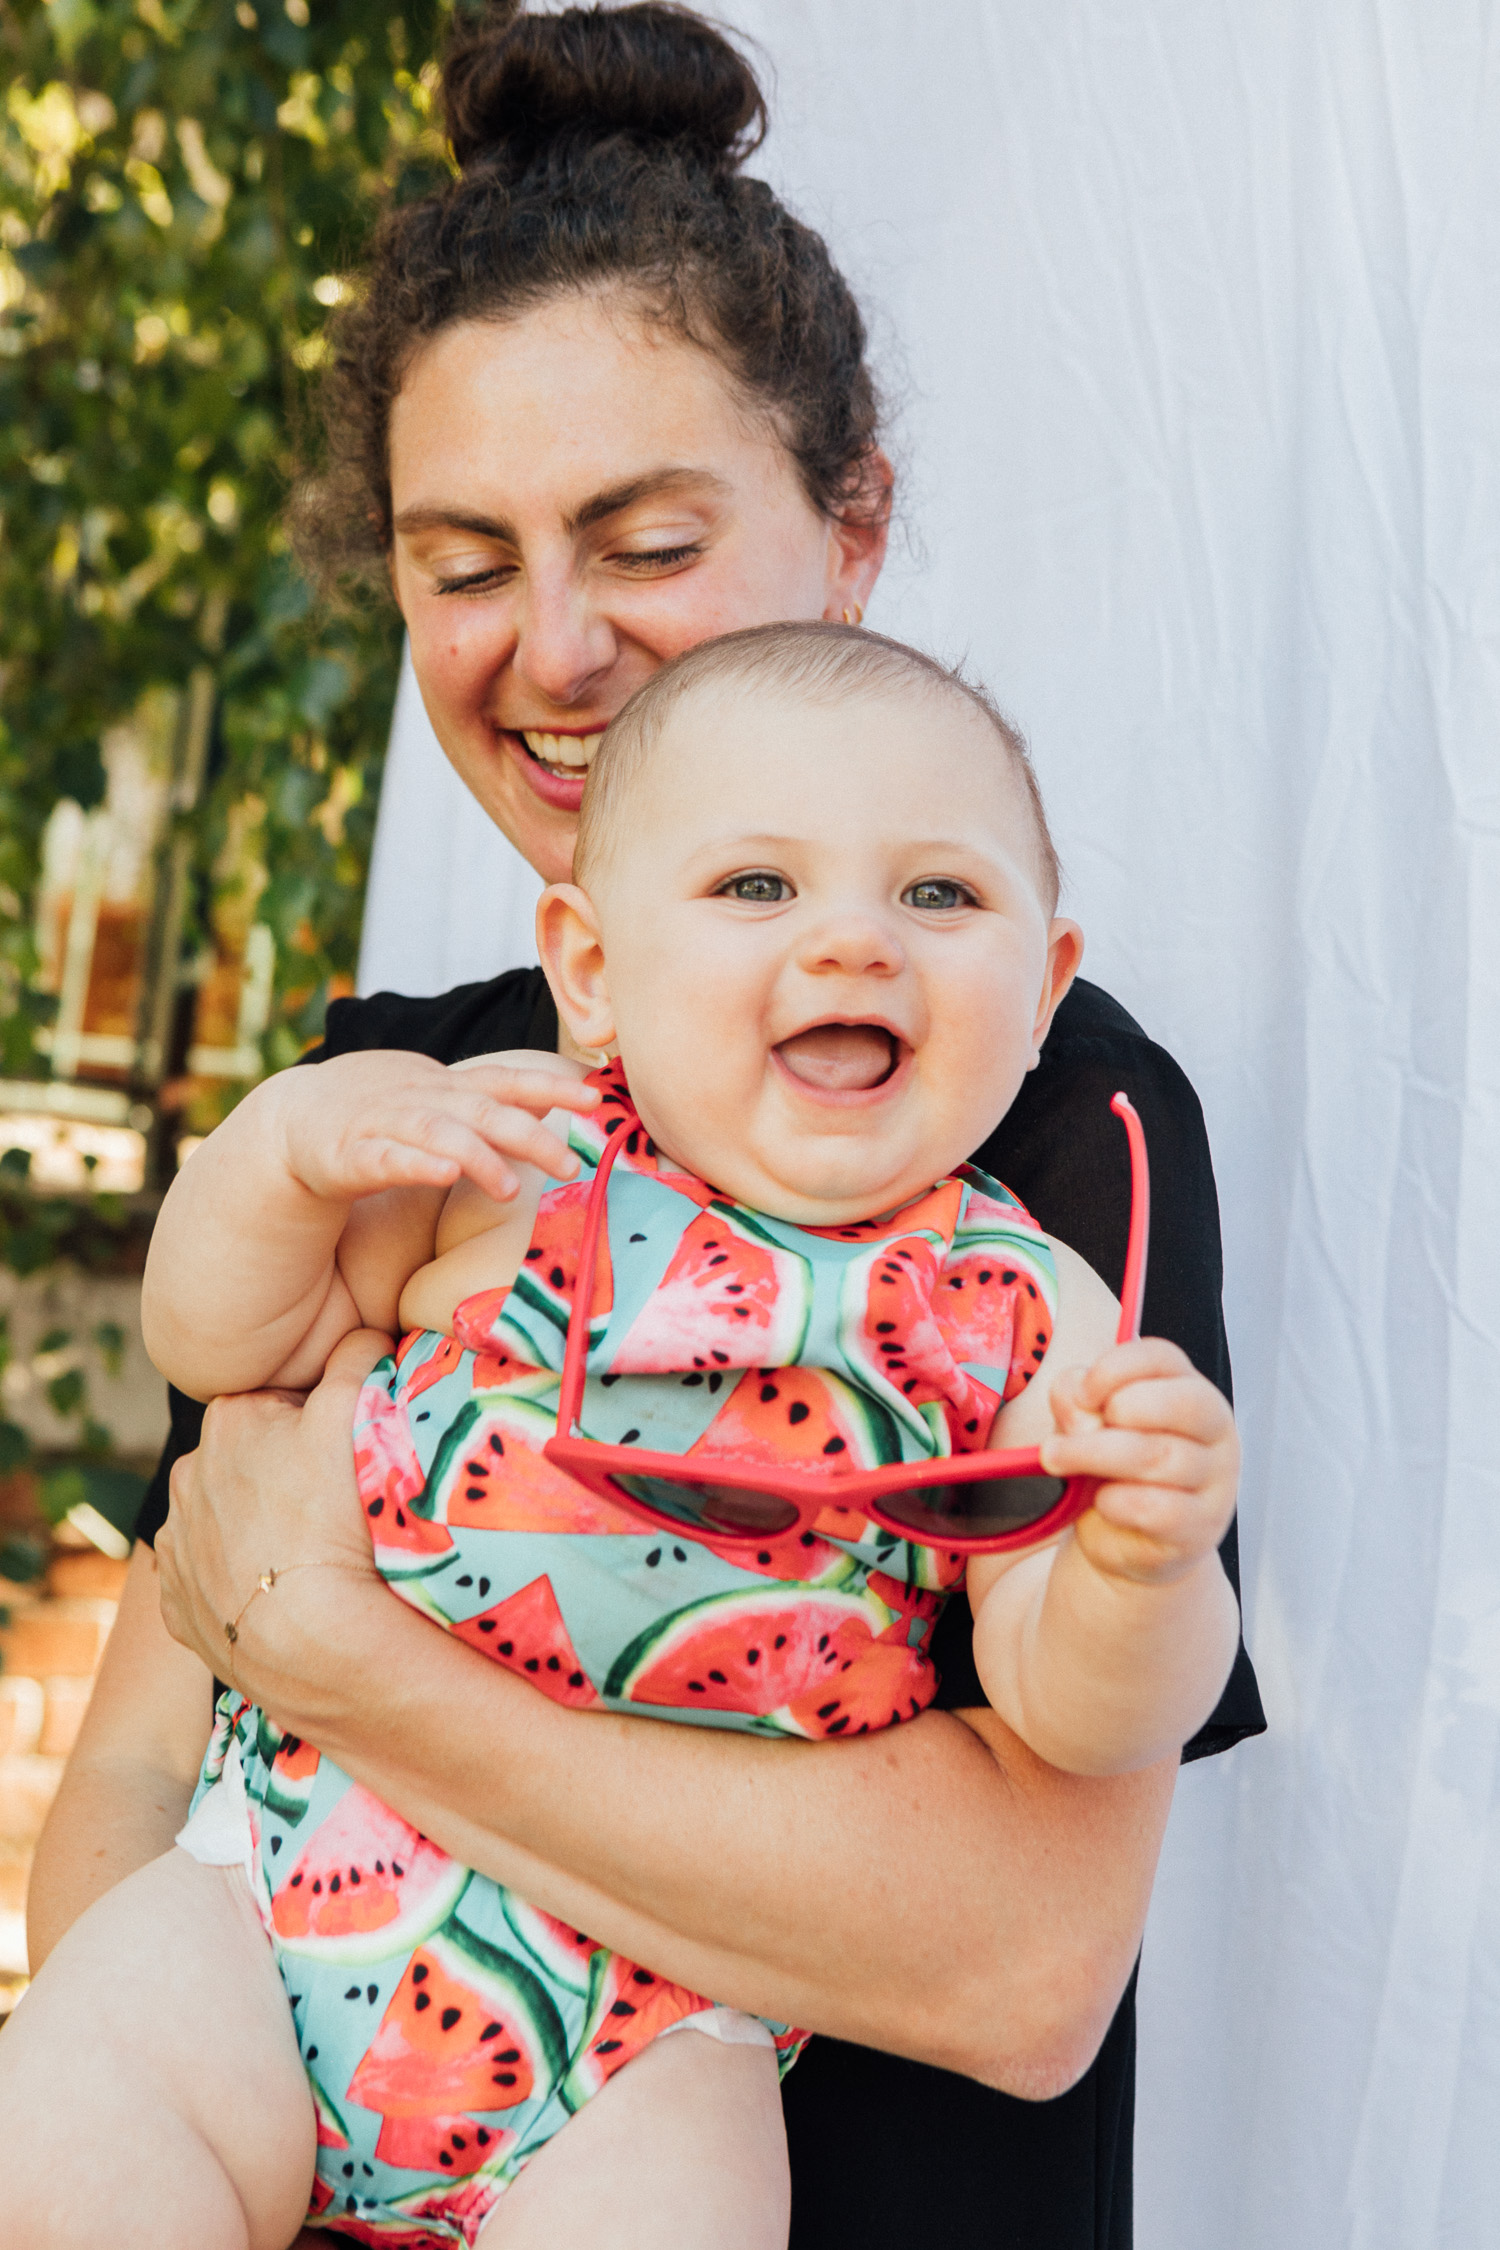 Los Angeles blogger, RELish By Arielle, shares photos with her daughter who's wearing a watermelon onesie